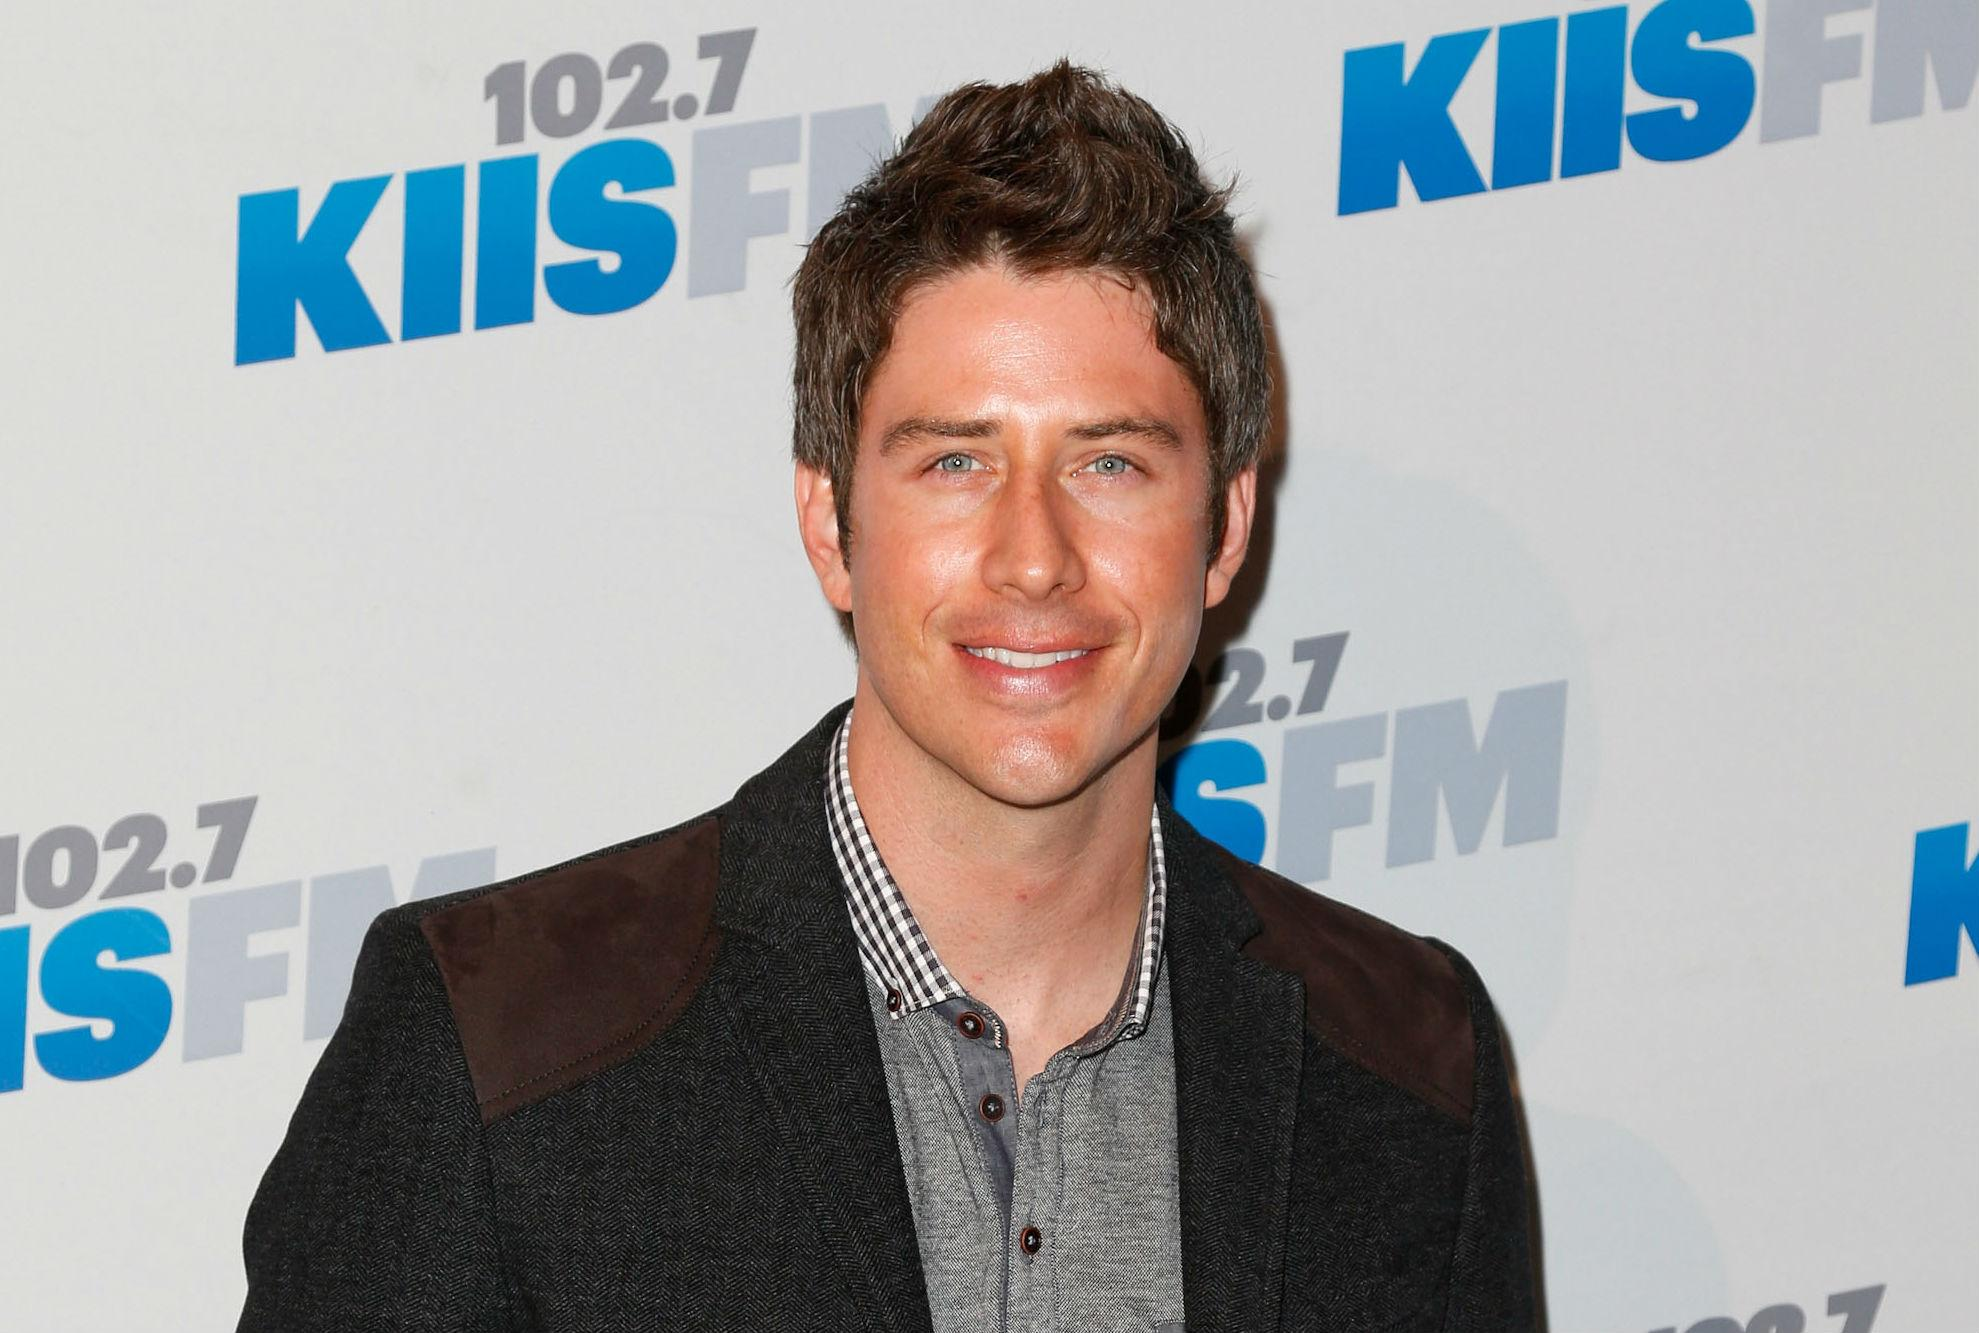 Meet Arie Luyendyk Jr., The New Star Of 'The Bachelor'